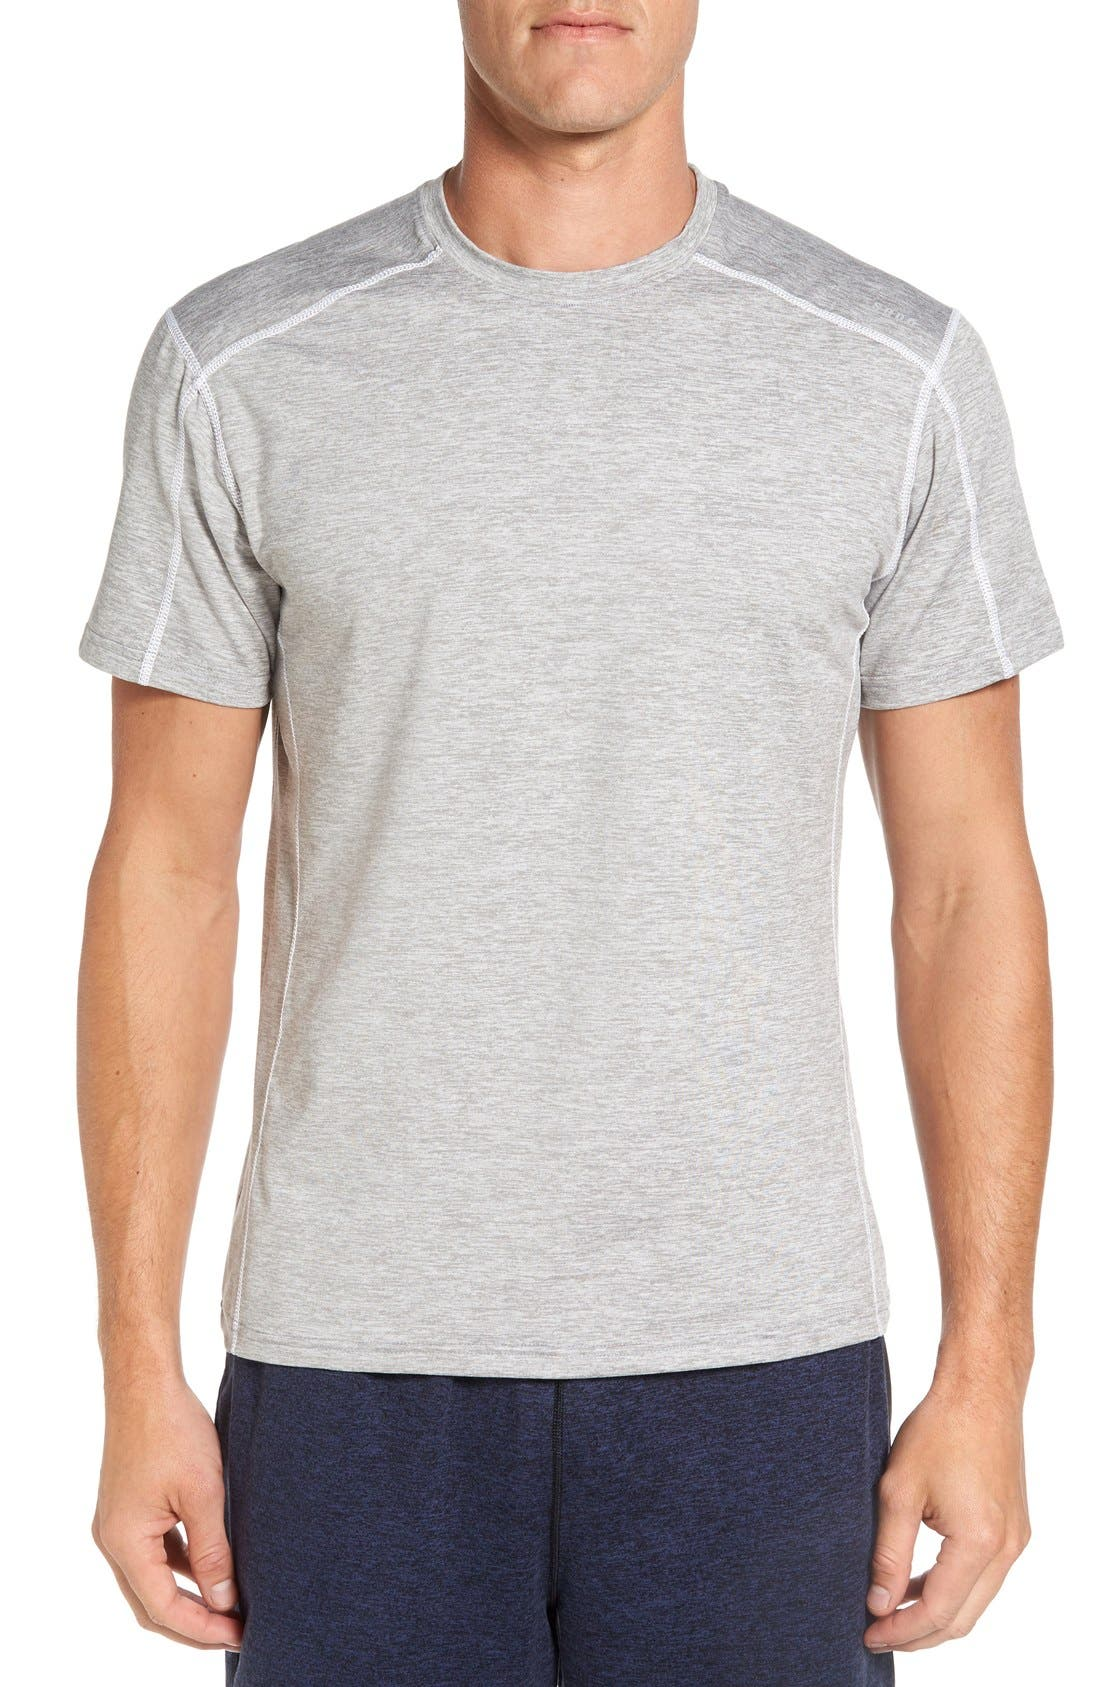 'Cooldown' Moisture Wicking Training T-Shirt,                         Main,                         color, 030